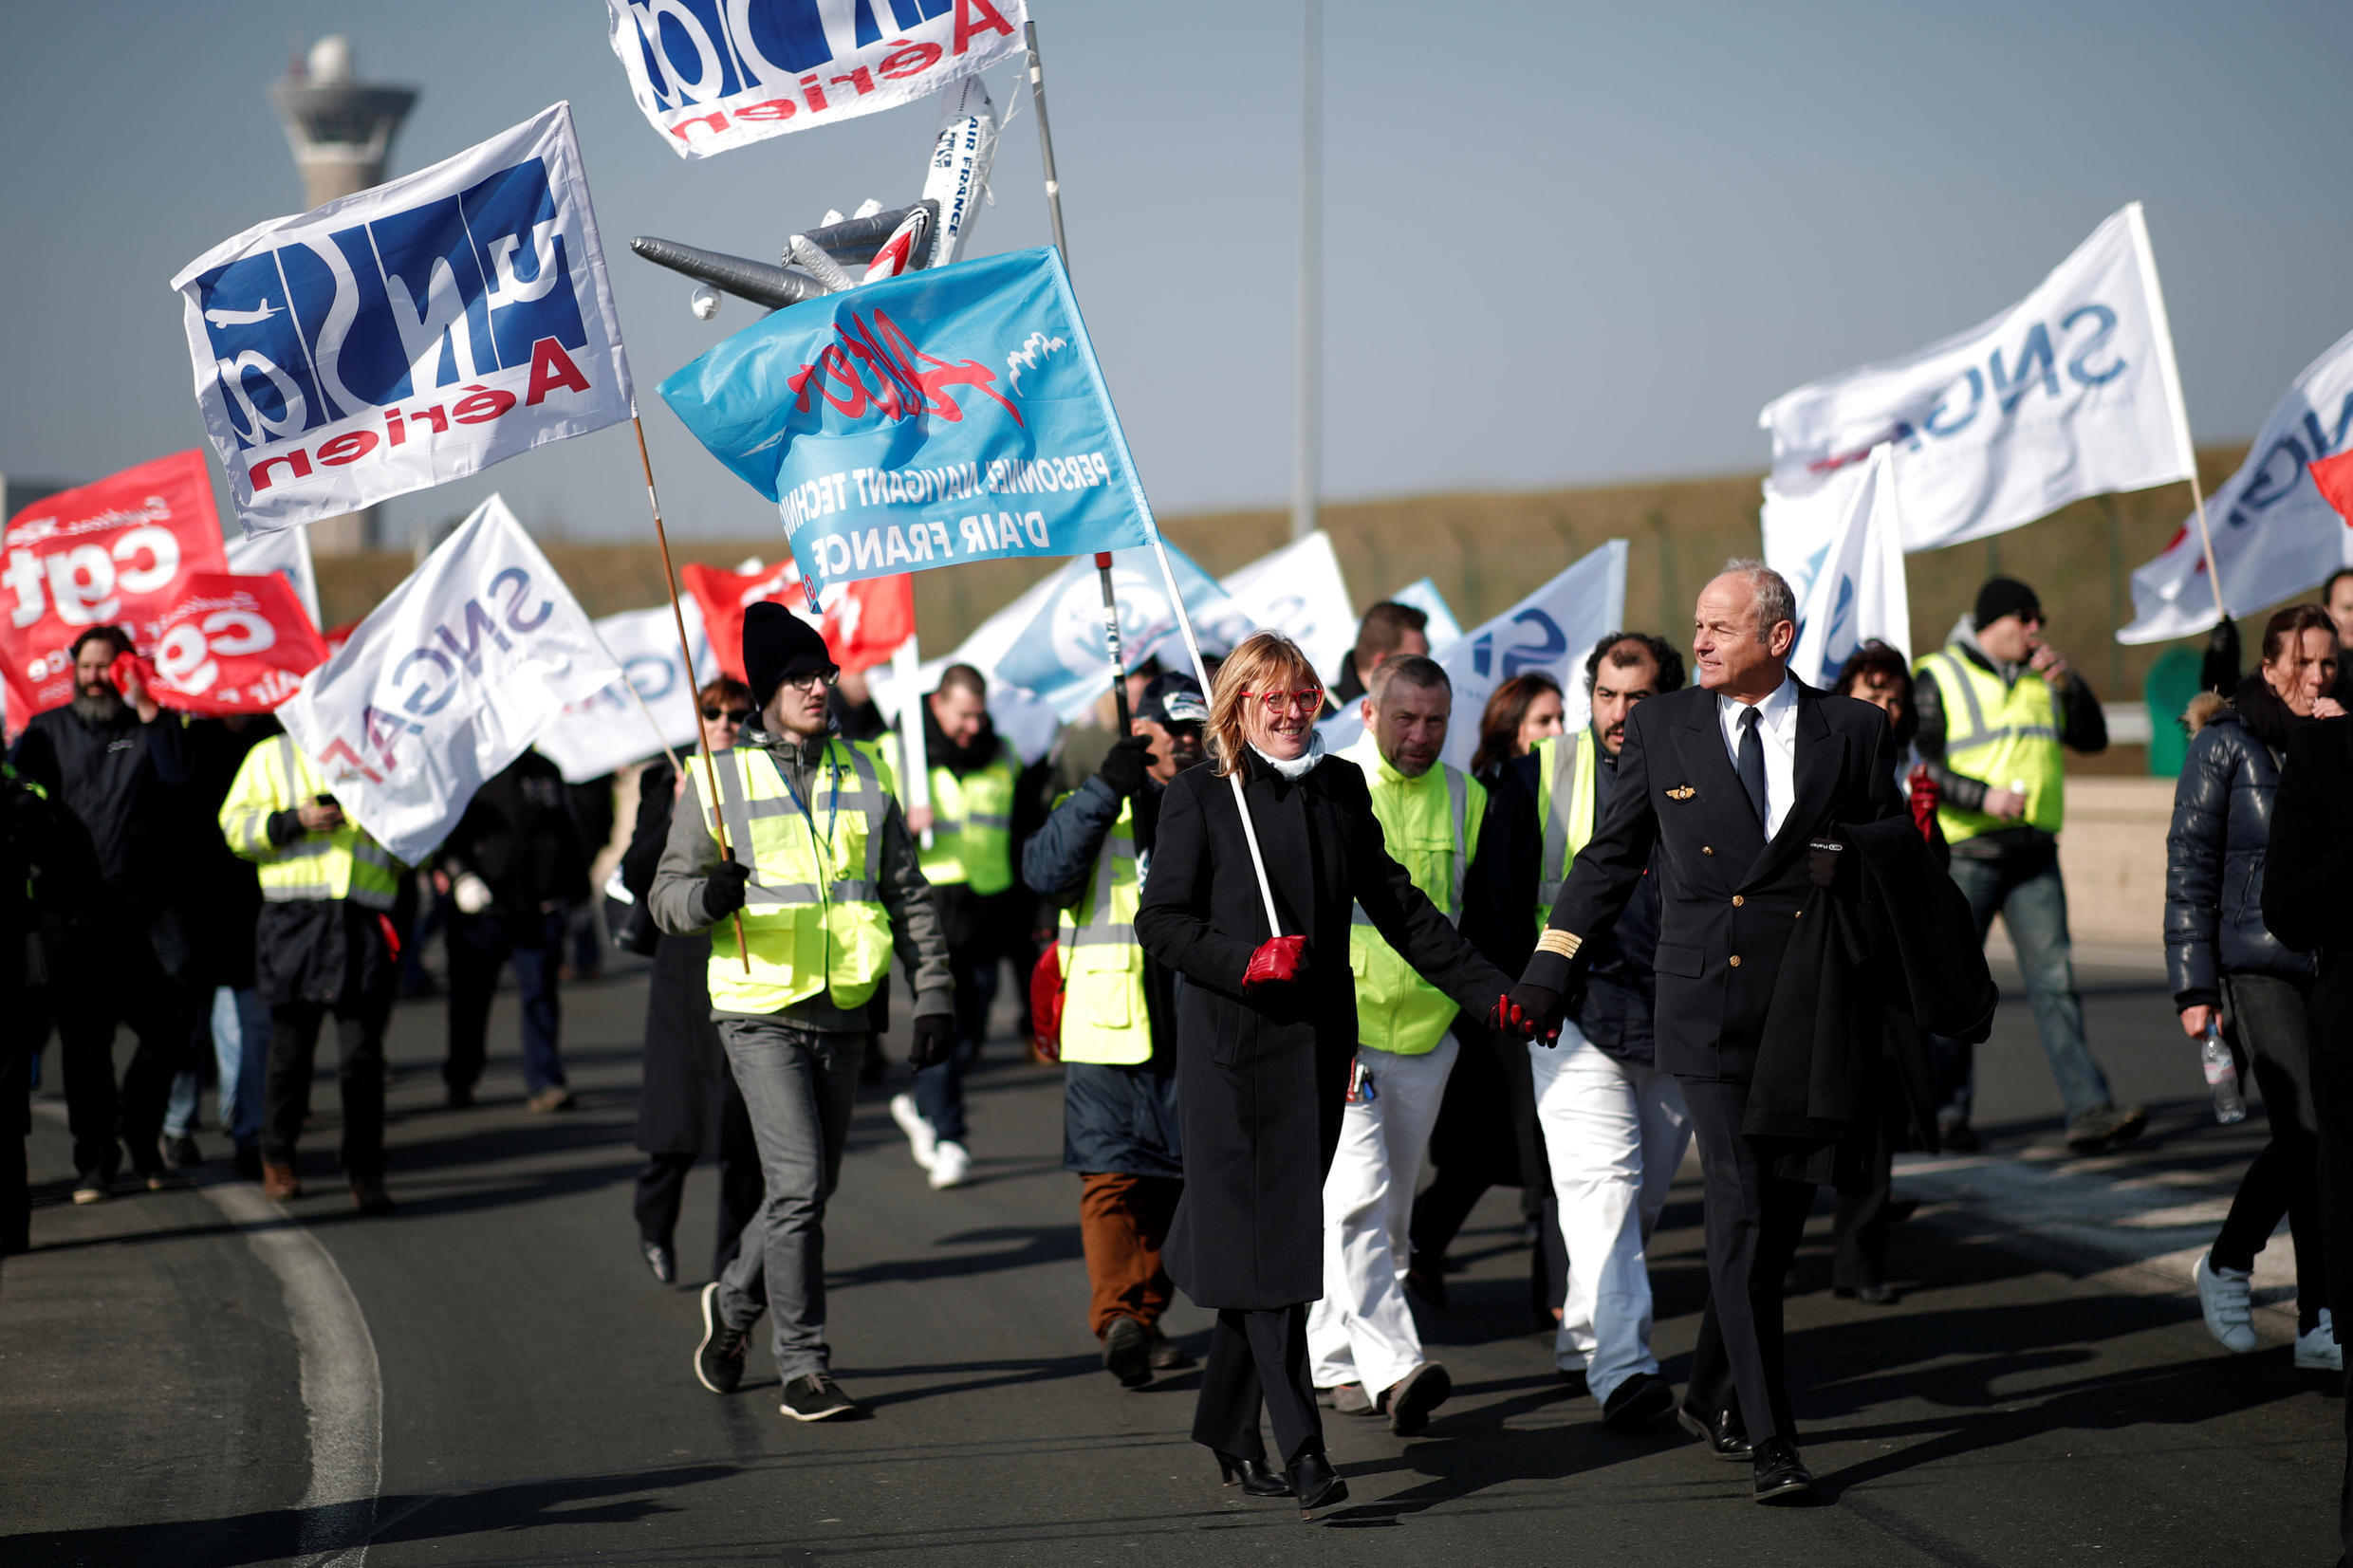 Air France employees demonstrate outside the Charles-de-Gaulle airport in February